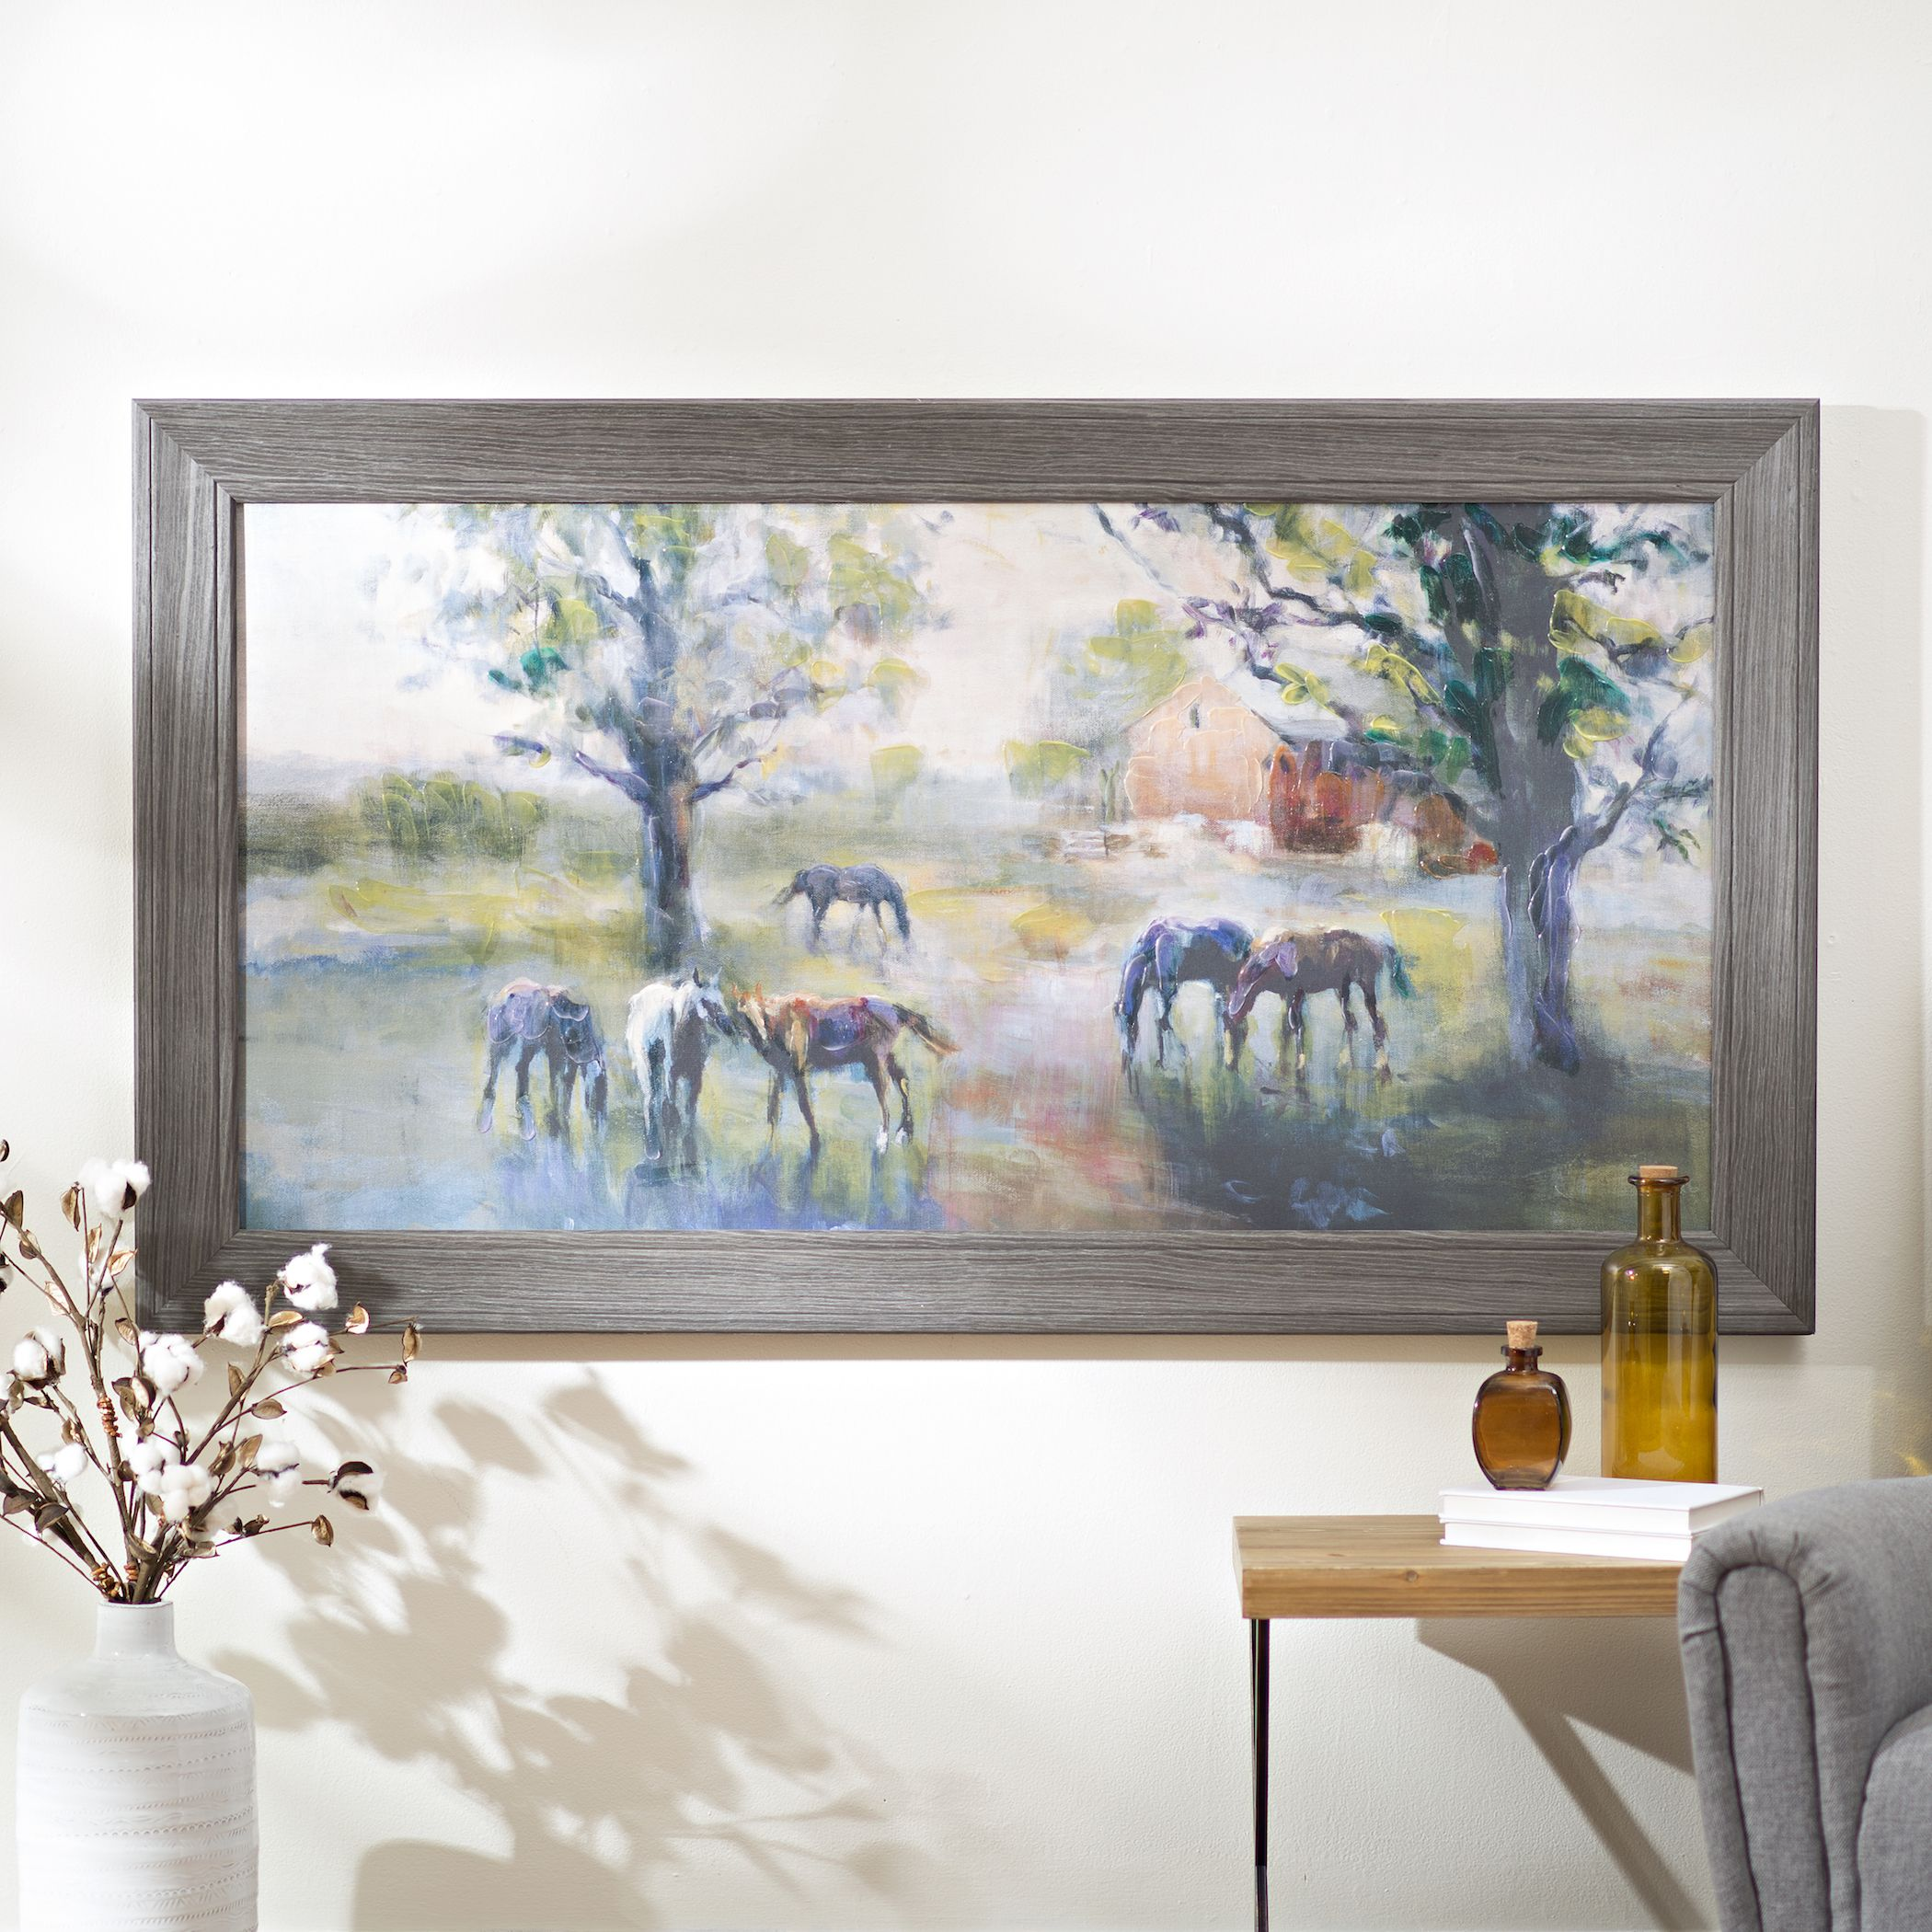 Create Your Own Gallery Wall With Charming Canvas Art